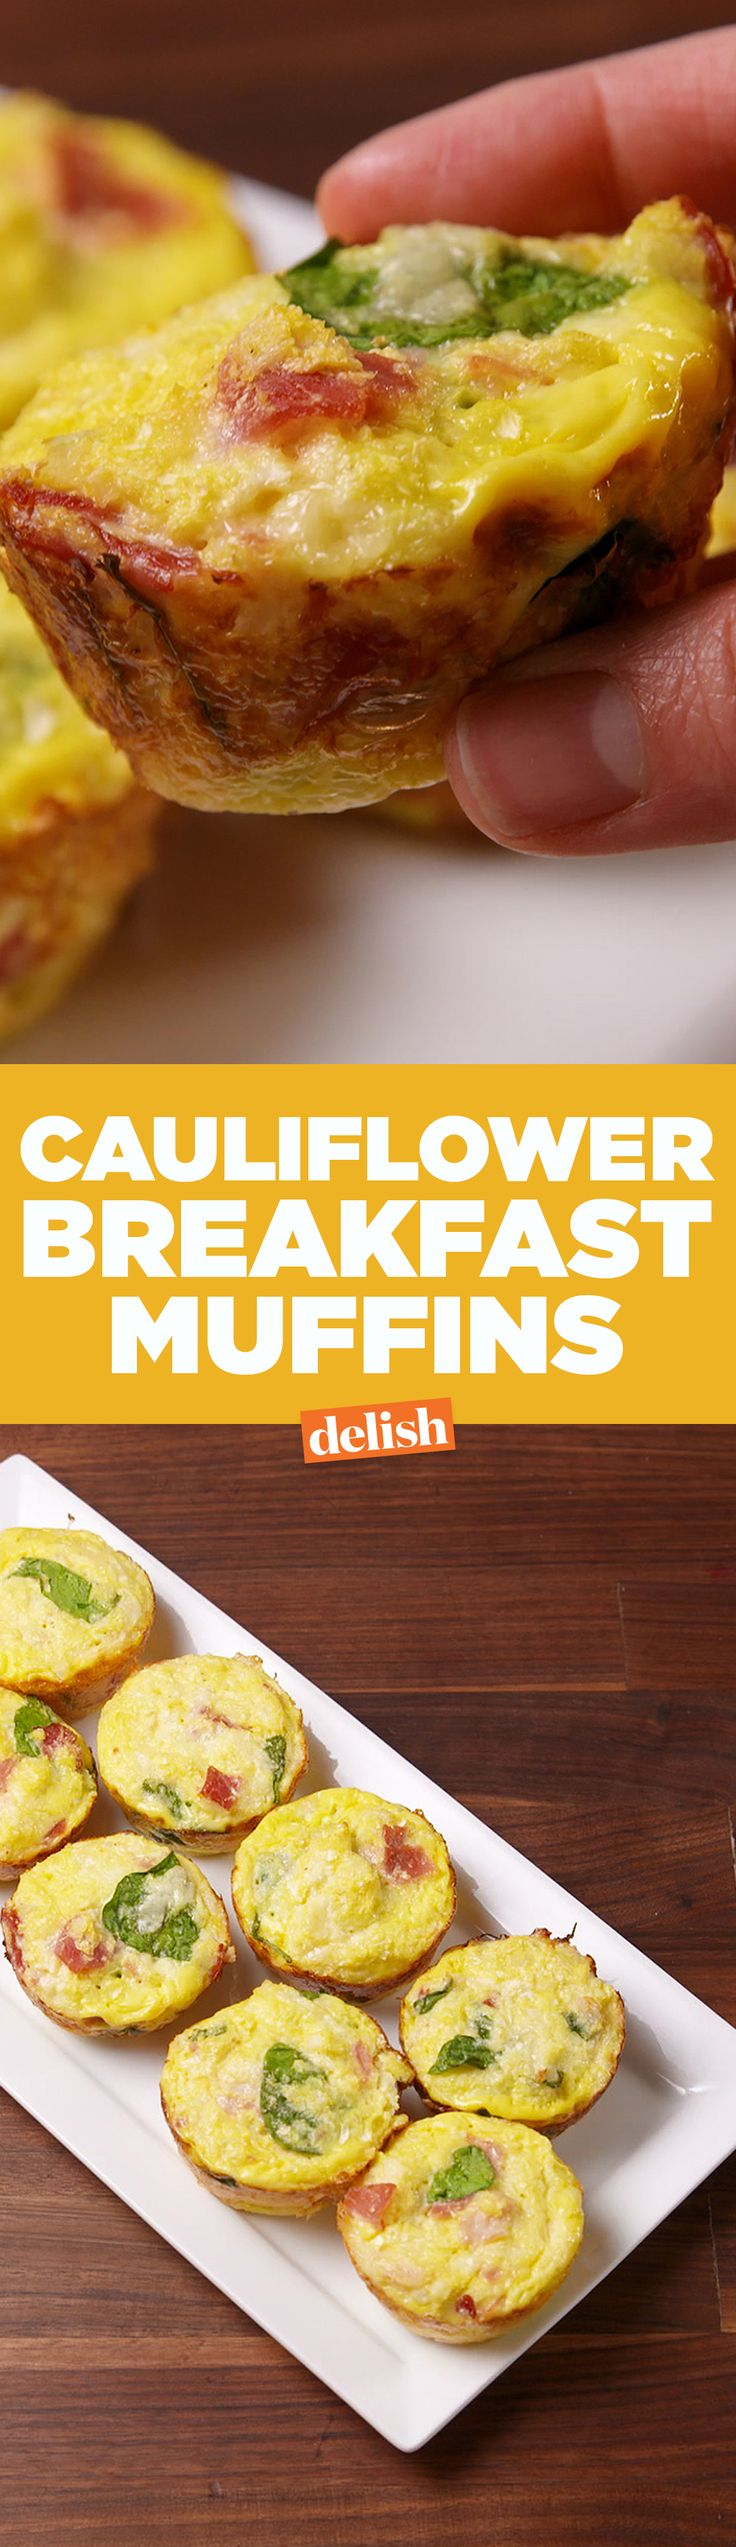 These Cauliflower Breakfast Muffins are the low-carb meal that will keep you full all morning. Get the recipe on Delish.com.